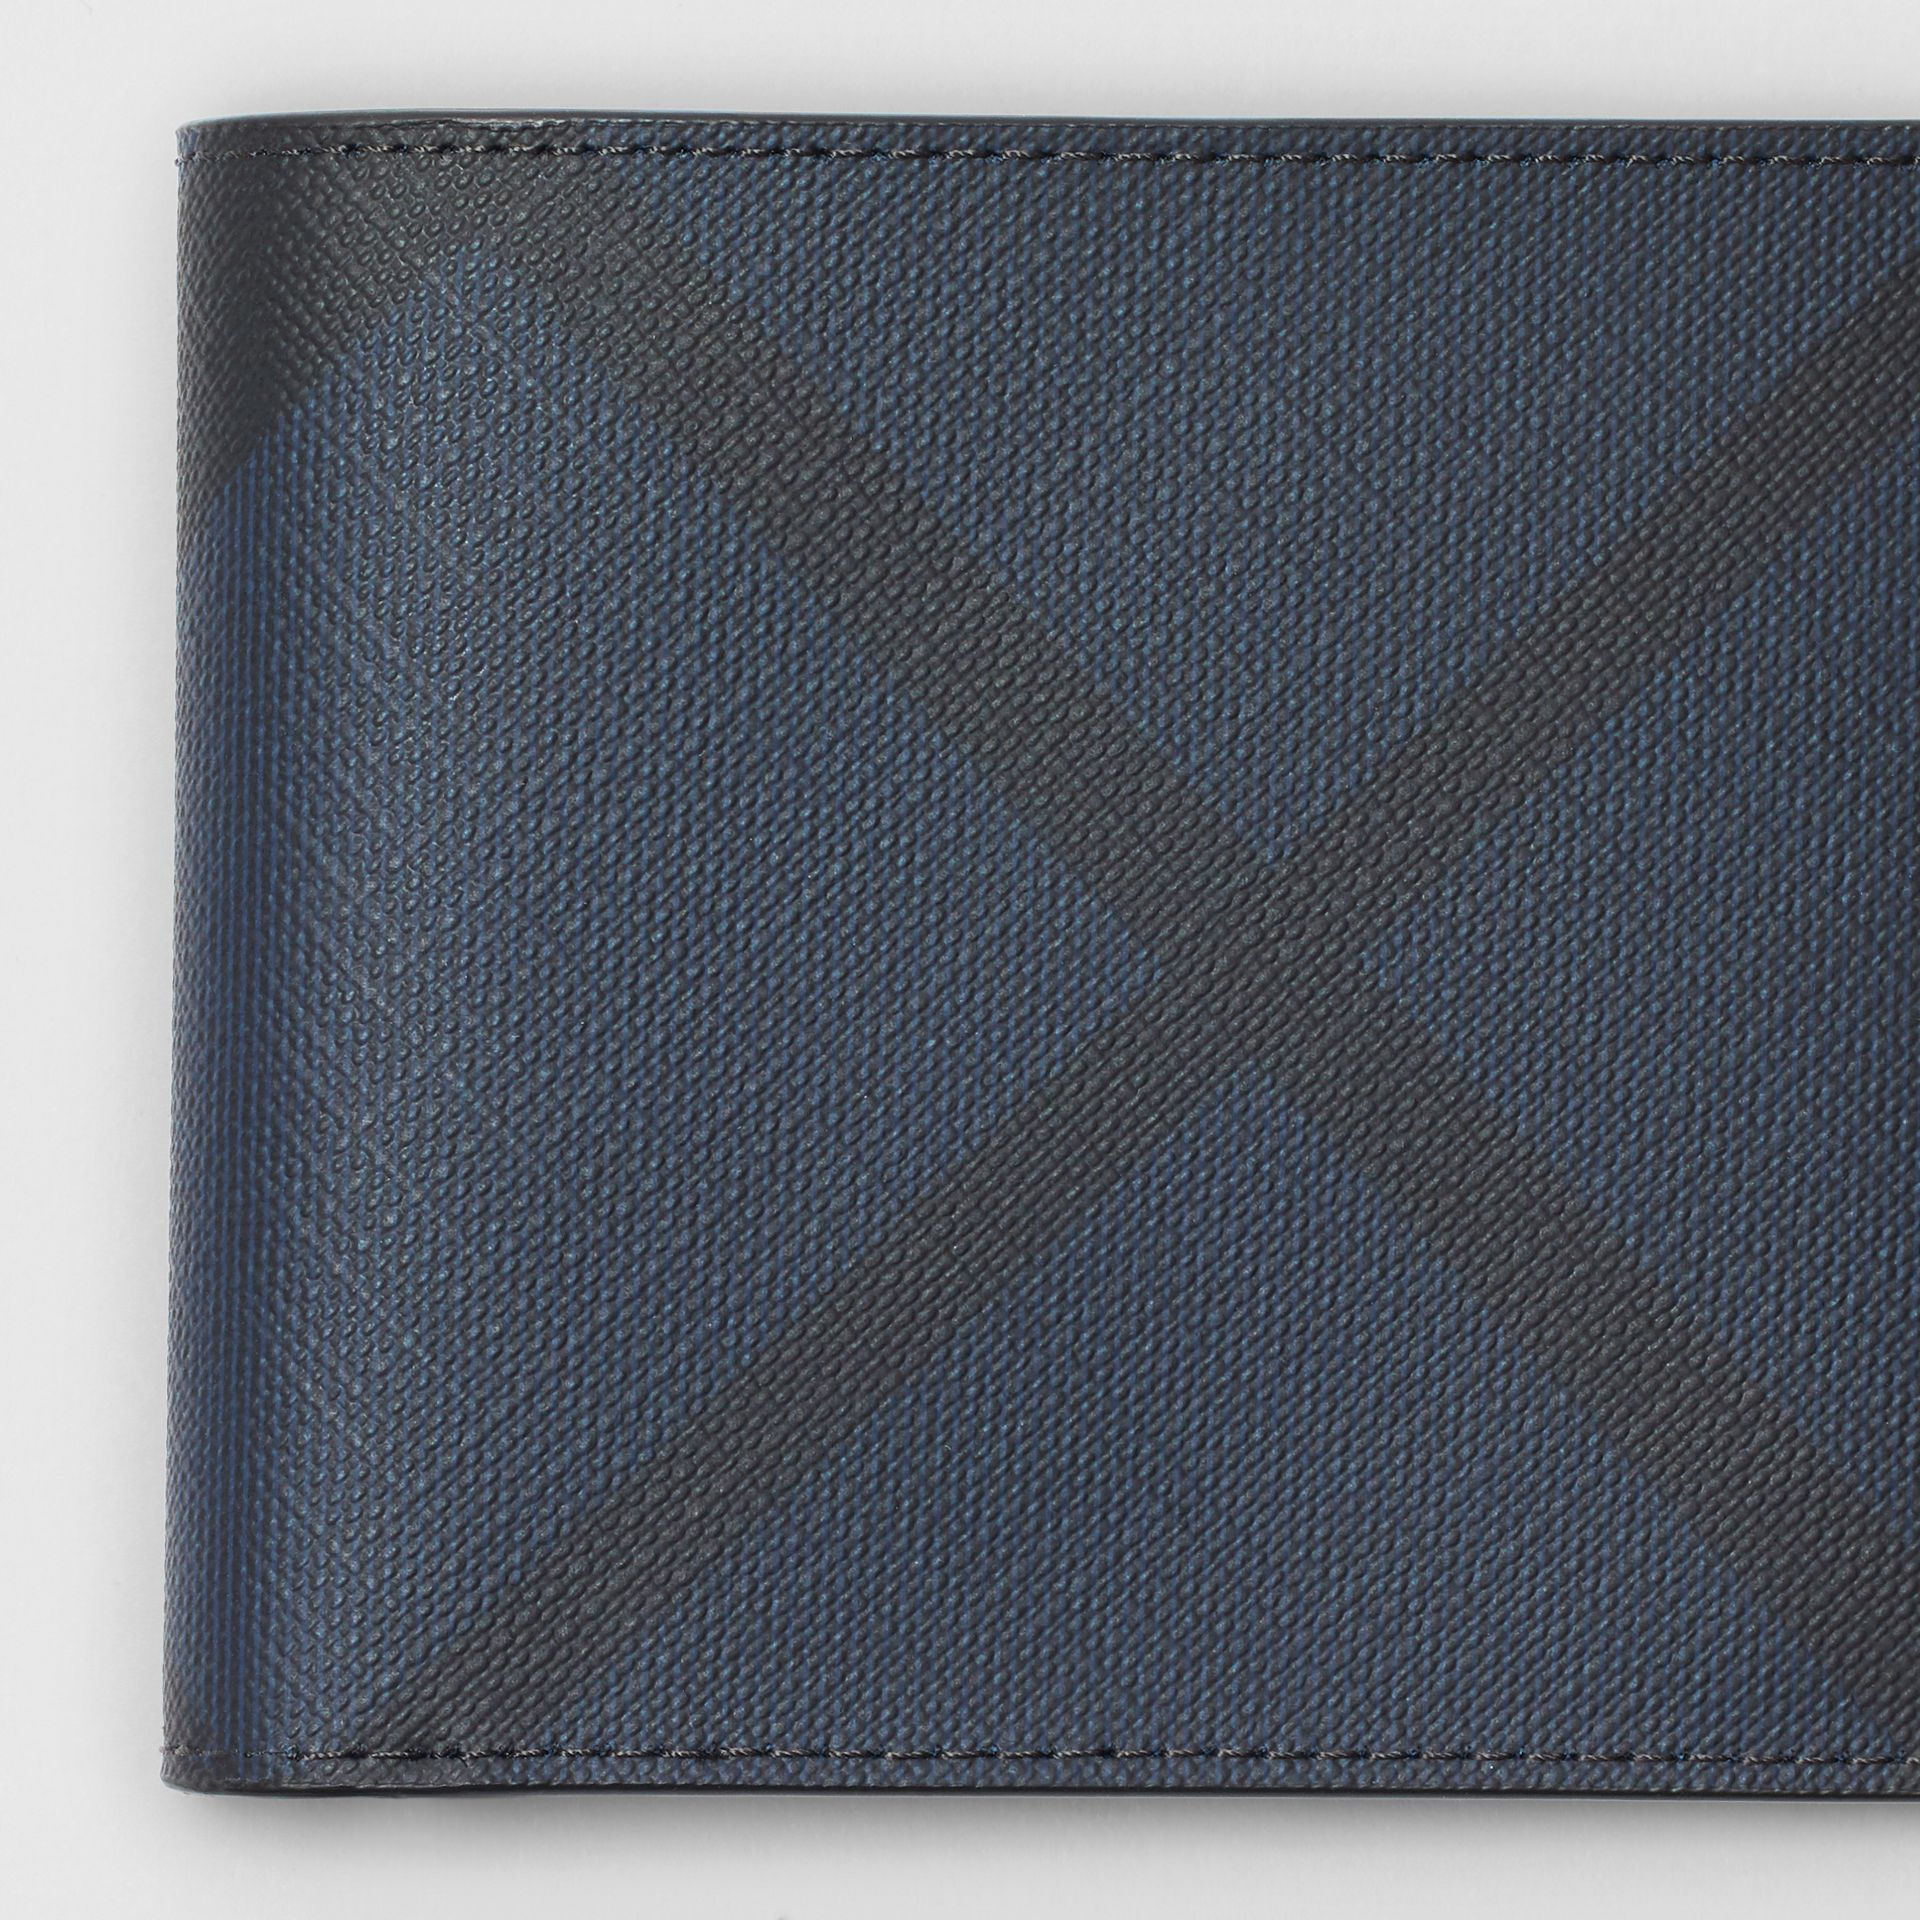 London Check and Leather International Bifold Wallet in Navy/black - Men | Burberry United Kingdom - gallery image 1